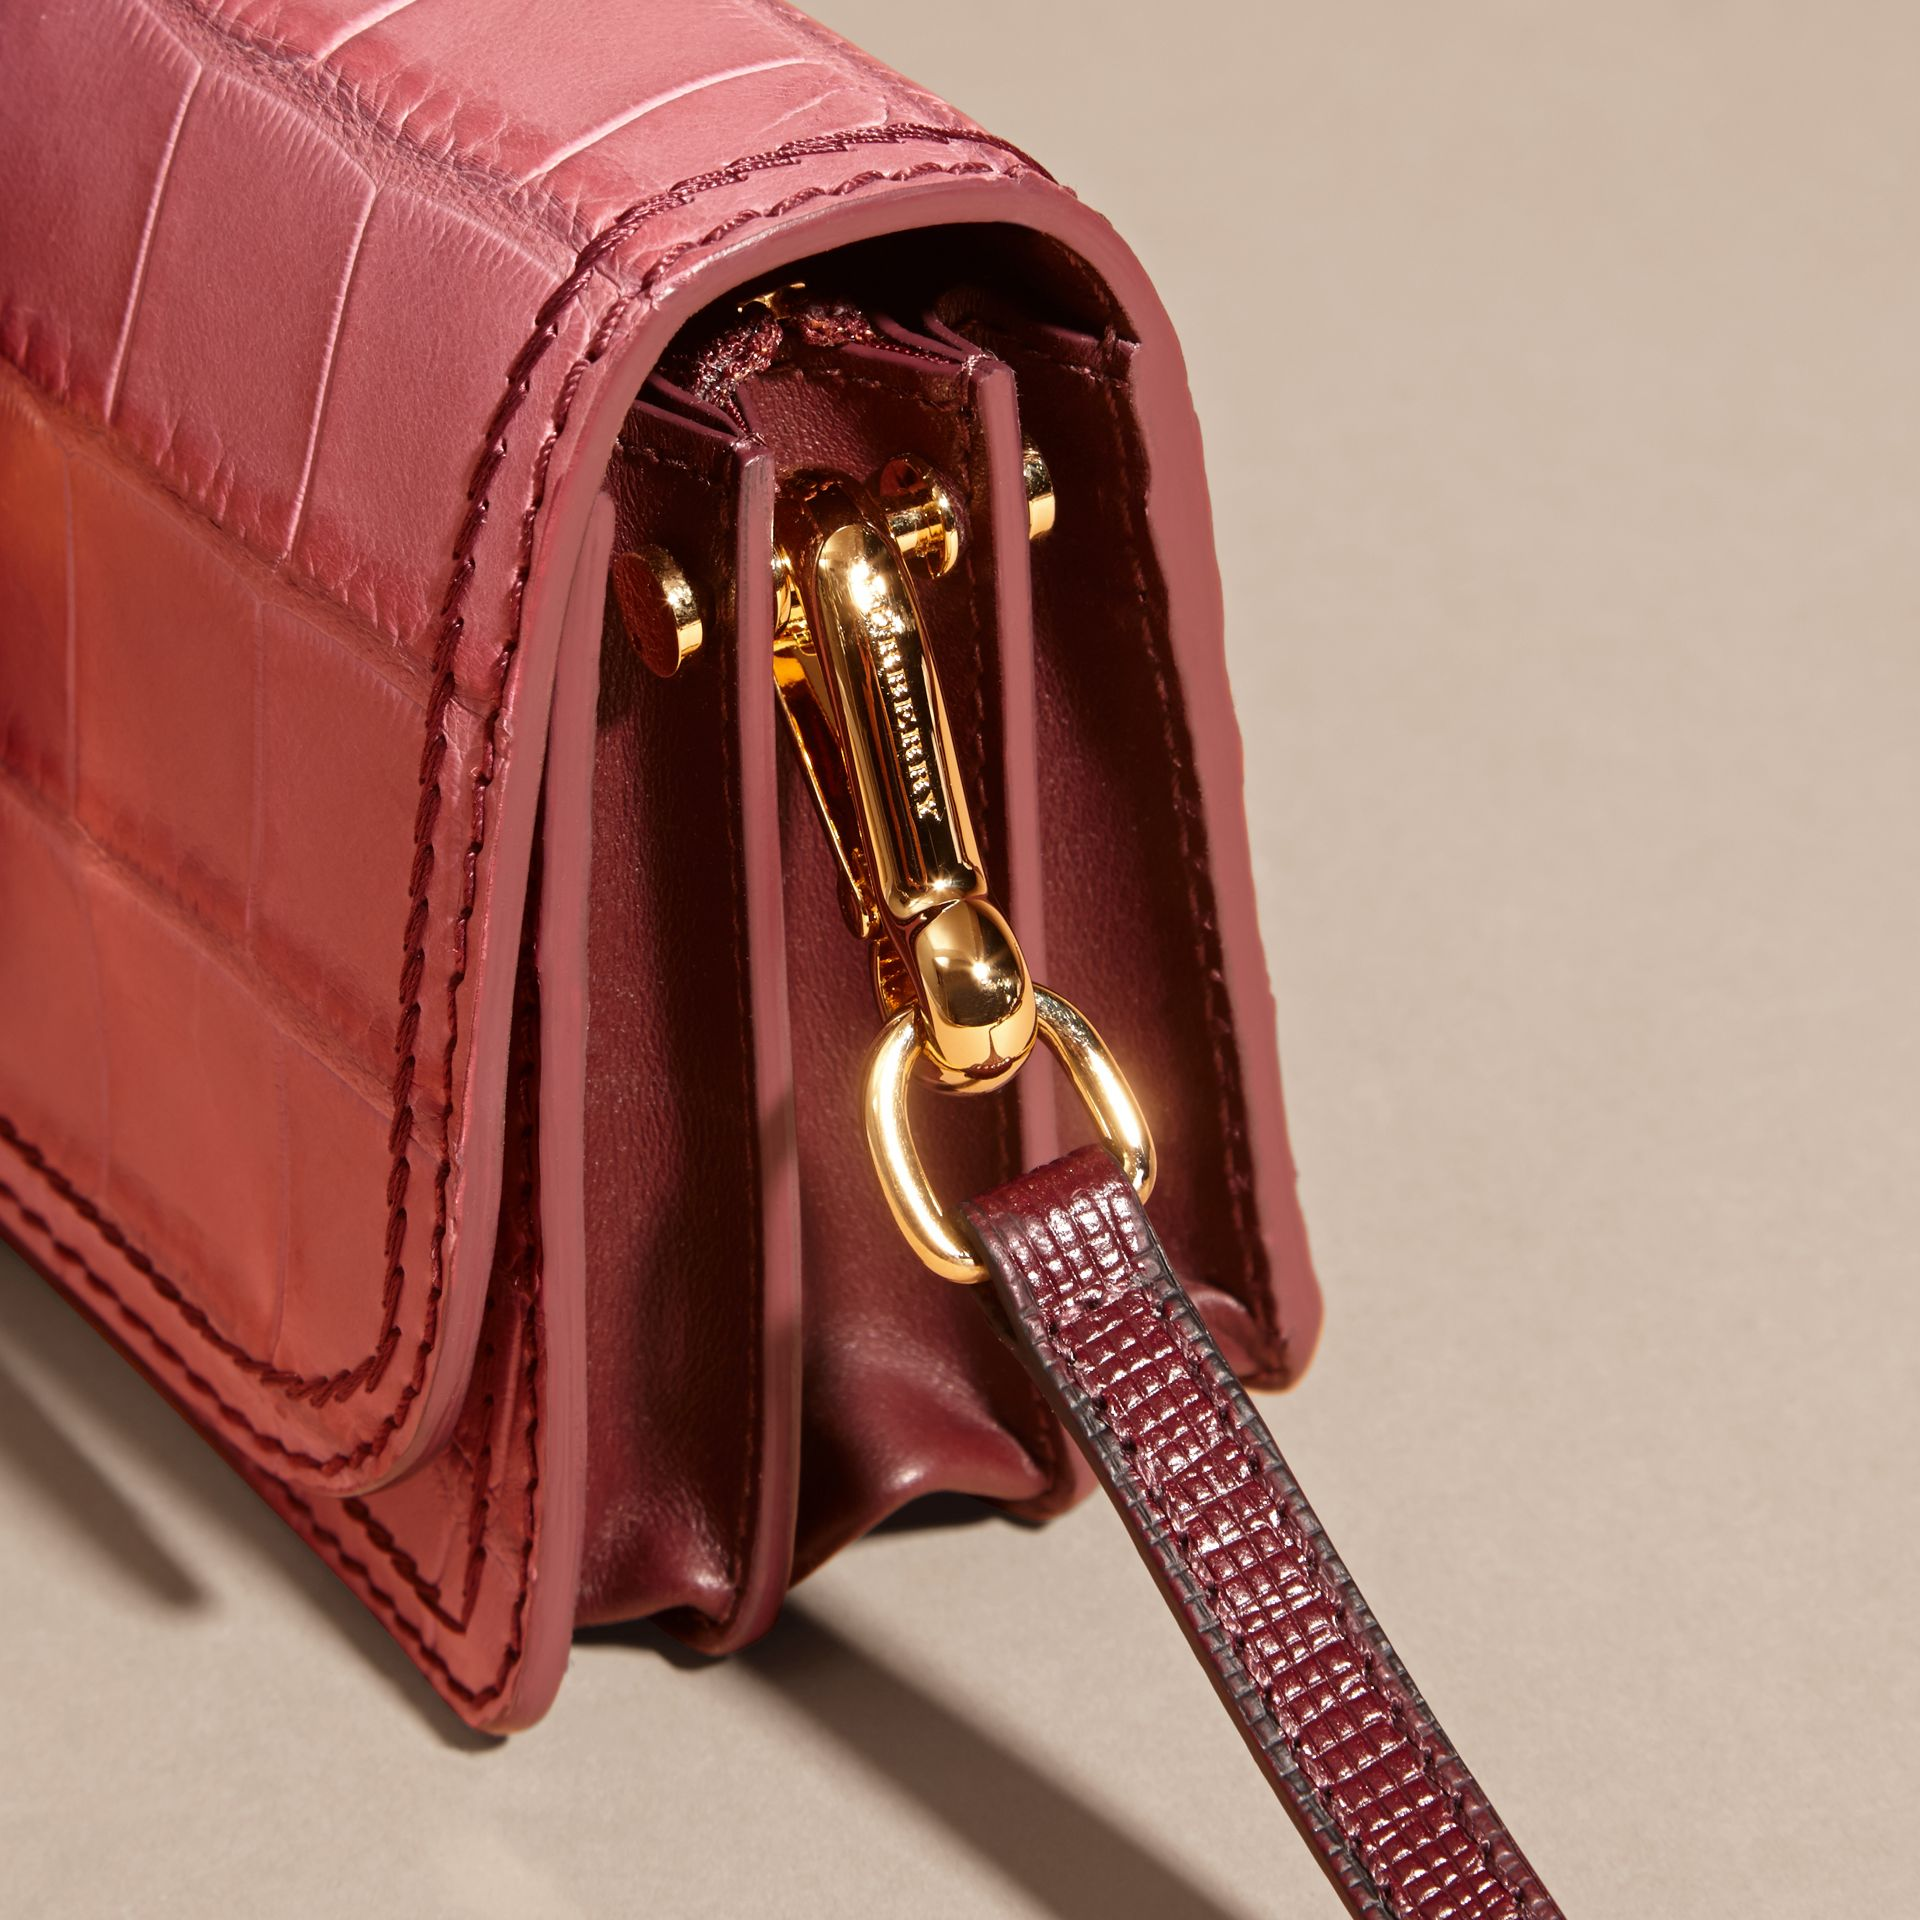 The Small Buckle Bag in Alligator and Leather in Dusky Pink/ Burgundy - Women | Burberry United Kingdom - gallery image 2